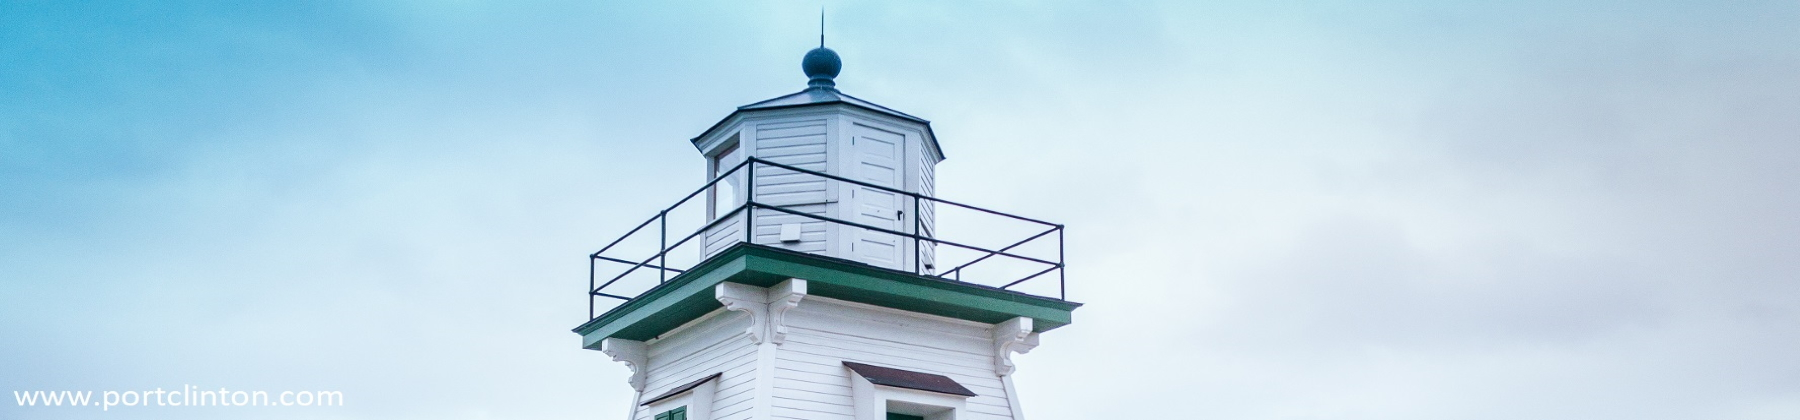 pc lighthouse